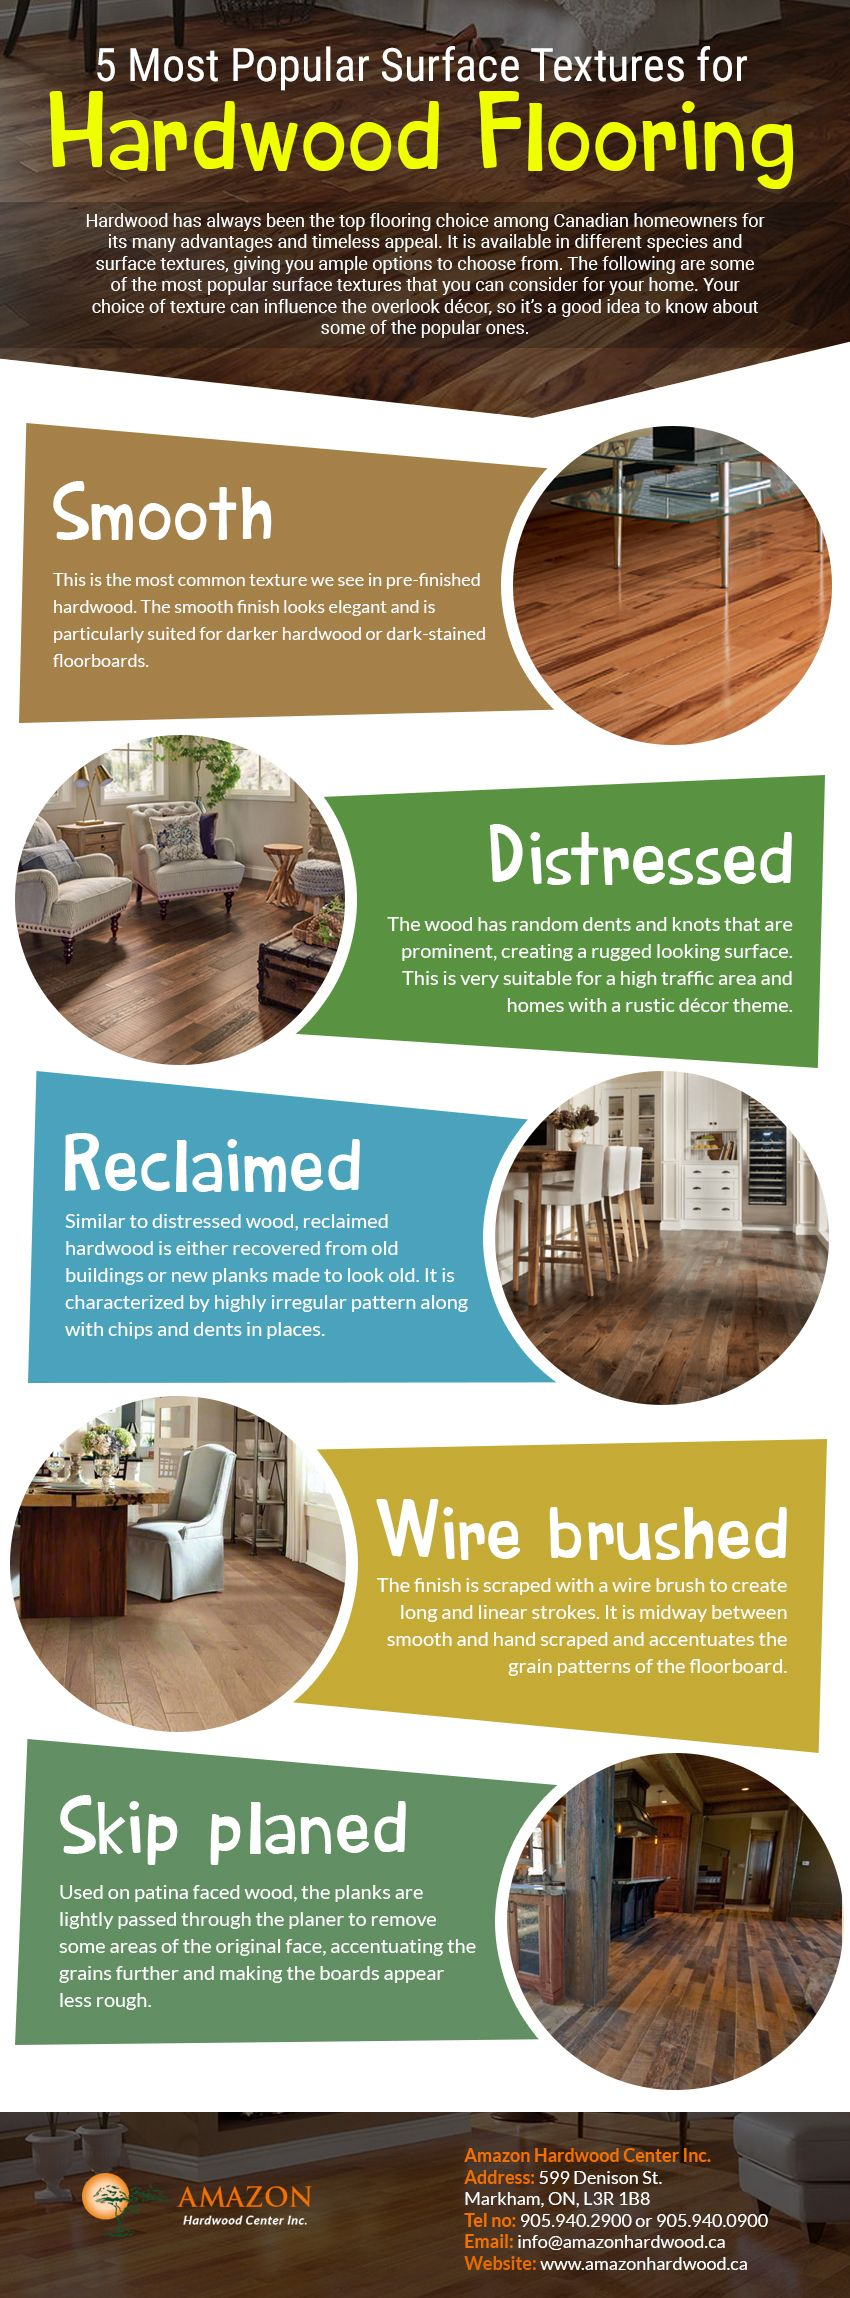 Top 5 Hardwood Flooring Surface Textures